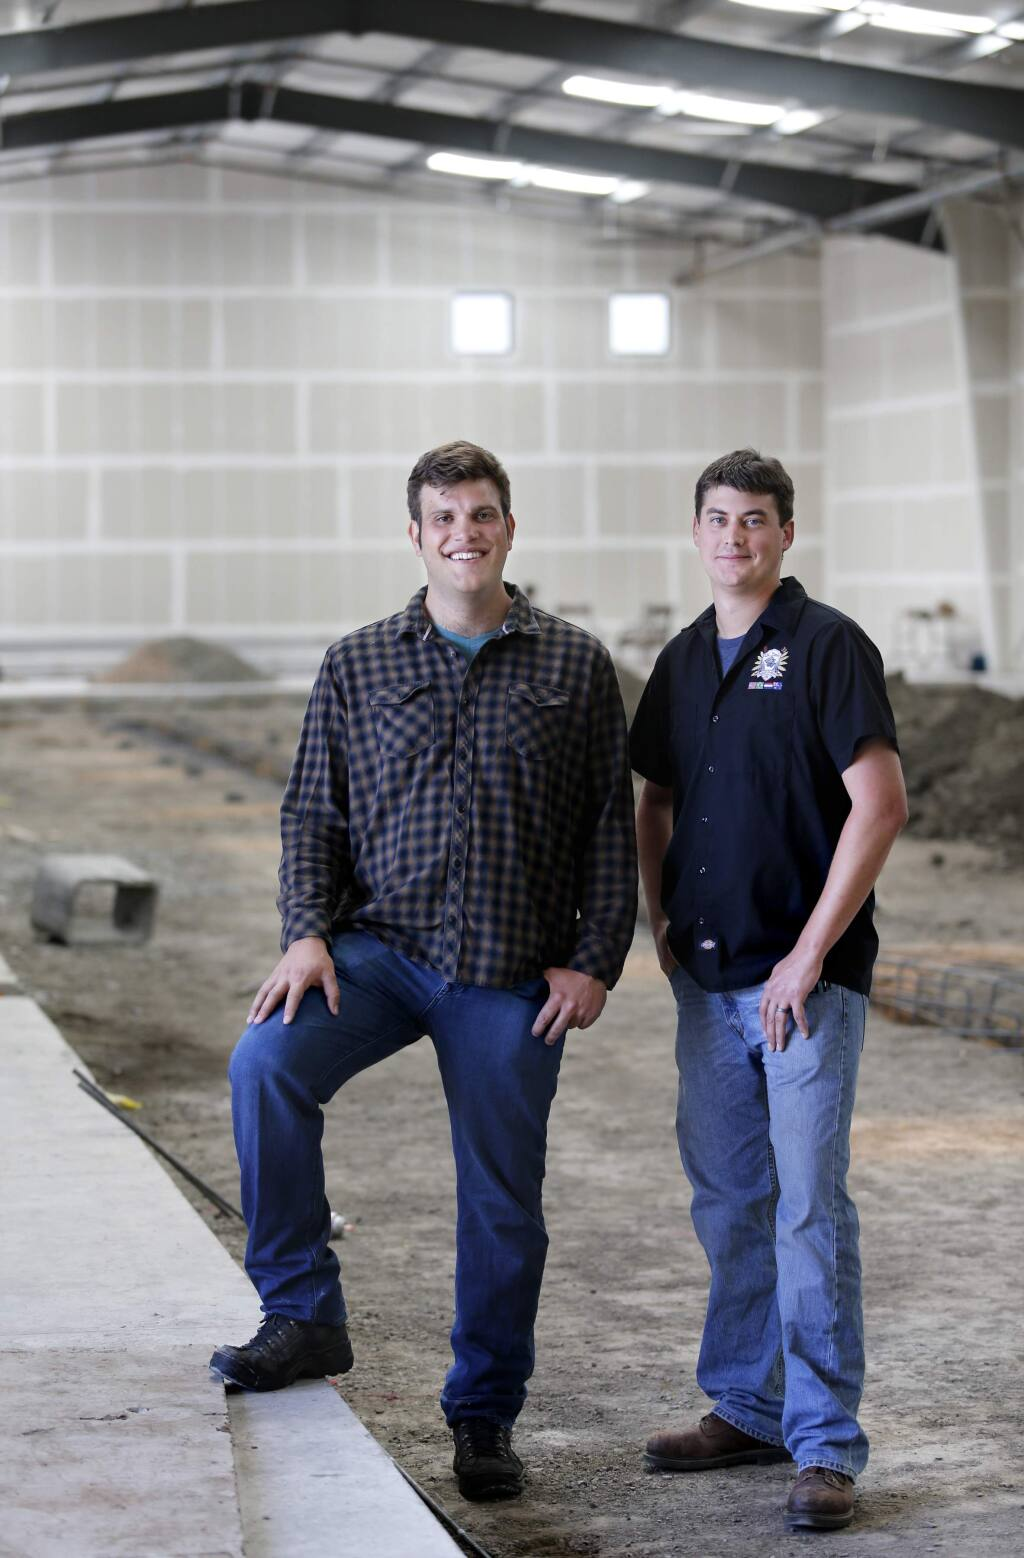 Christopher Jackson, owner of Seismic Brewing Co., left, and Andy Hooper, Brewmaster and Director of Operations, at the building which will house Seismic Brewing Co. Photo taken in Santa Rosa, on Thursday, May 26, 2016. (BETH SCHLANKER/ The Press Democrat)